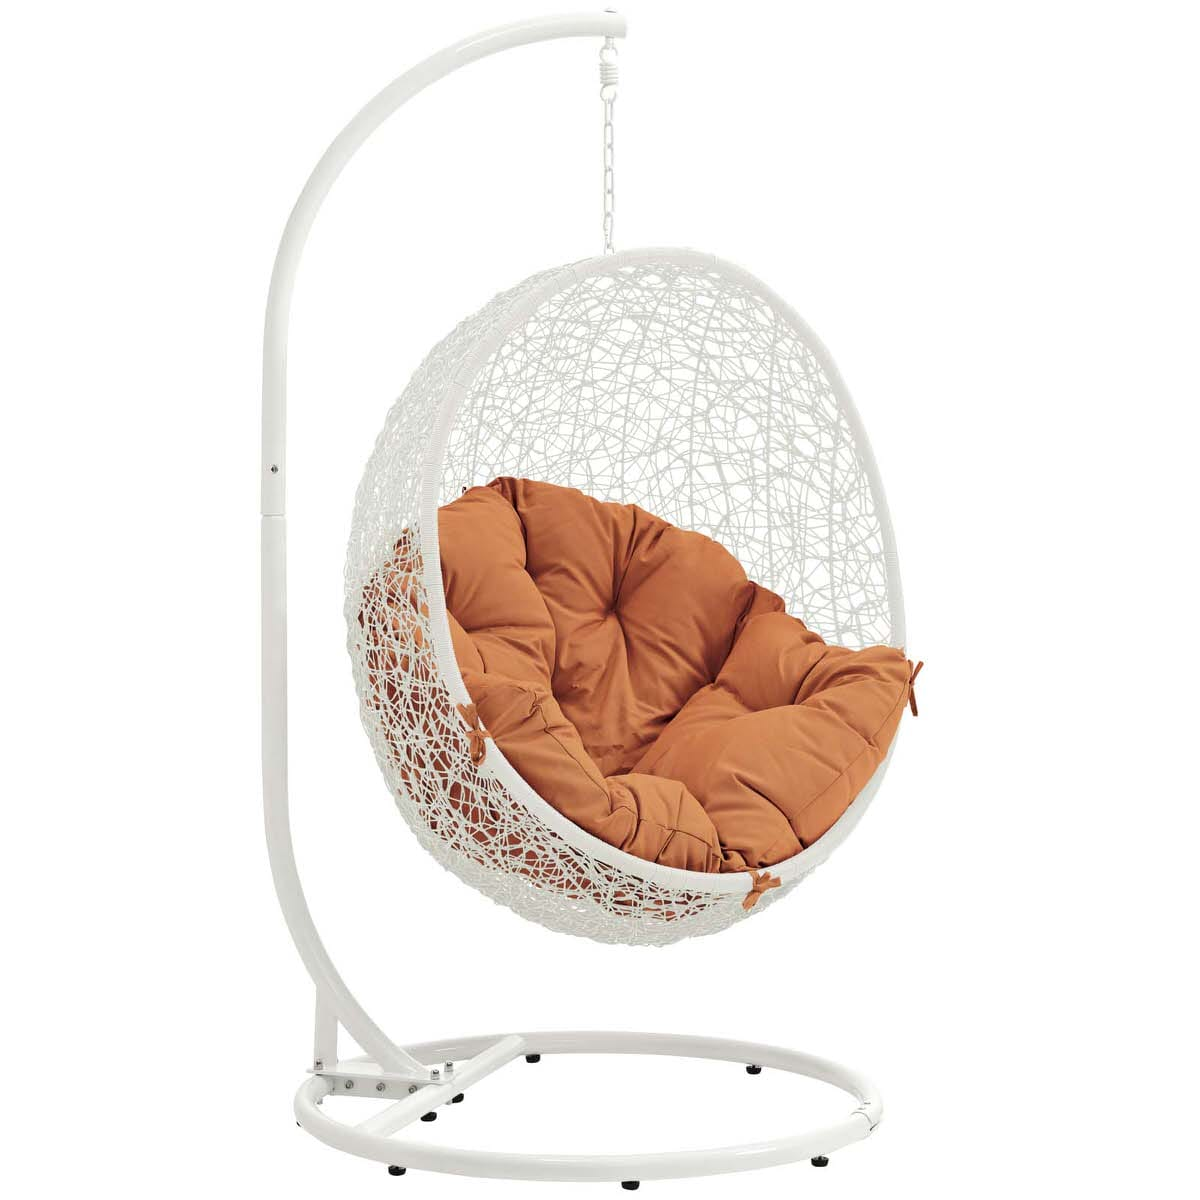 Amazing Hide Outdoor Patio Swing Chair With Stand White Orange By Modern Living Onthecornerstone Fun Painted Chair Ideas Images Onthecornerstoneorg